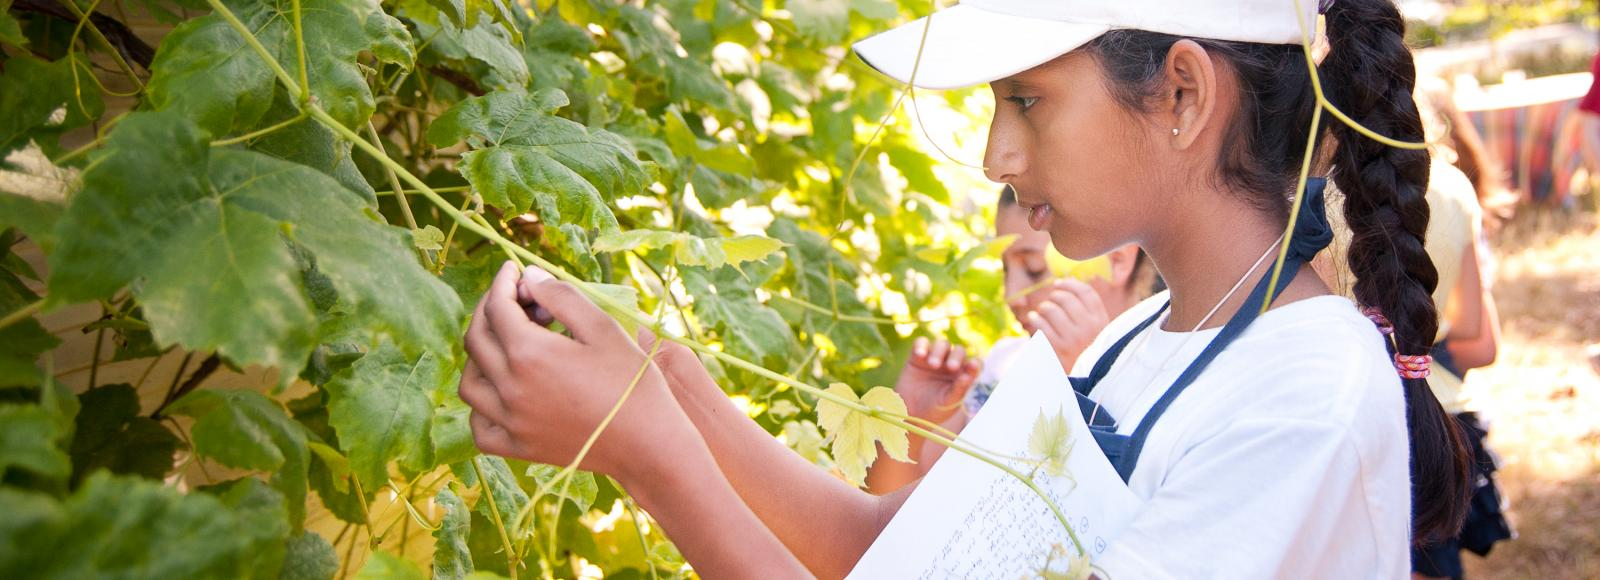 A younng girl harvests grapes from a bright green hedge at Zenger Farm.